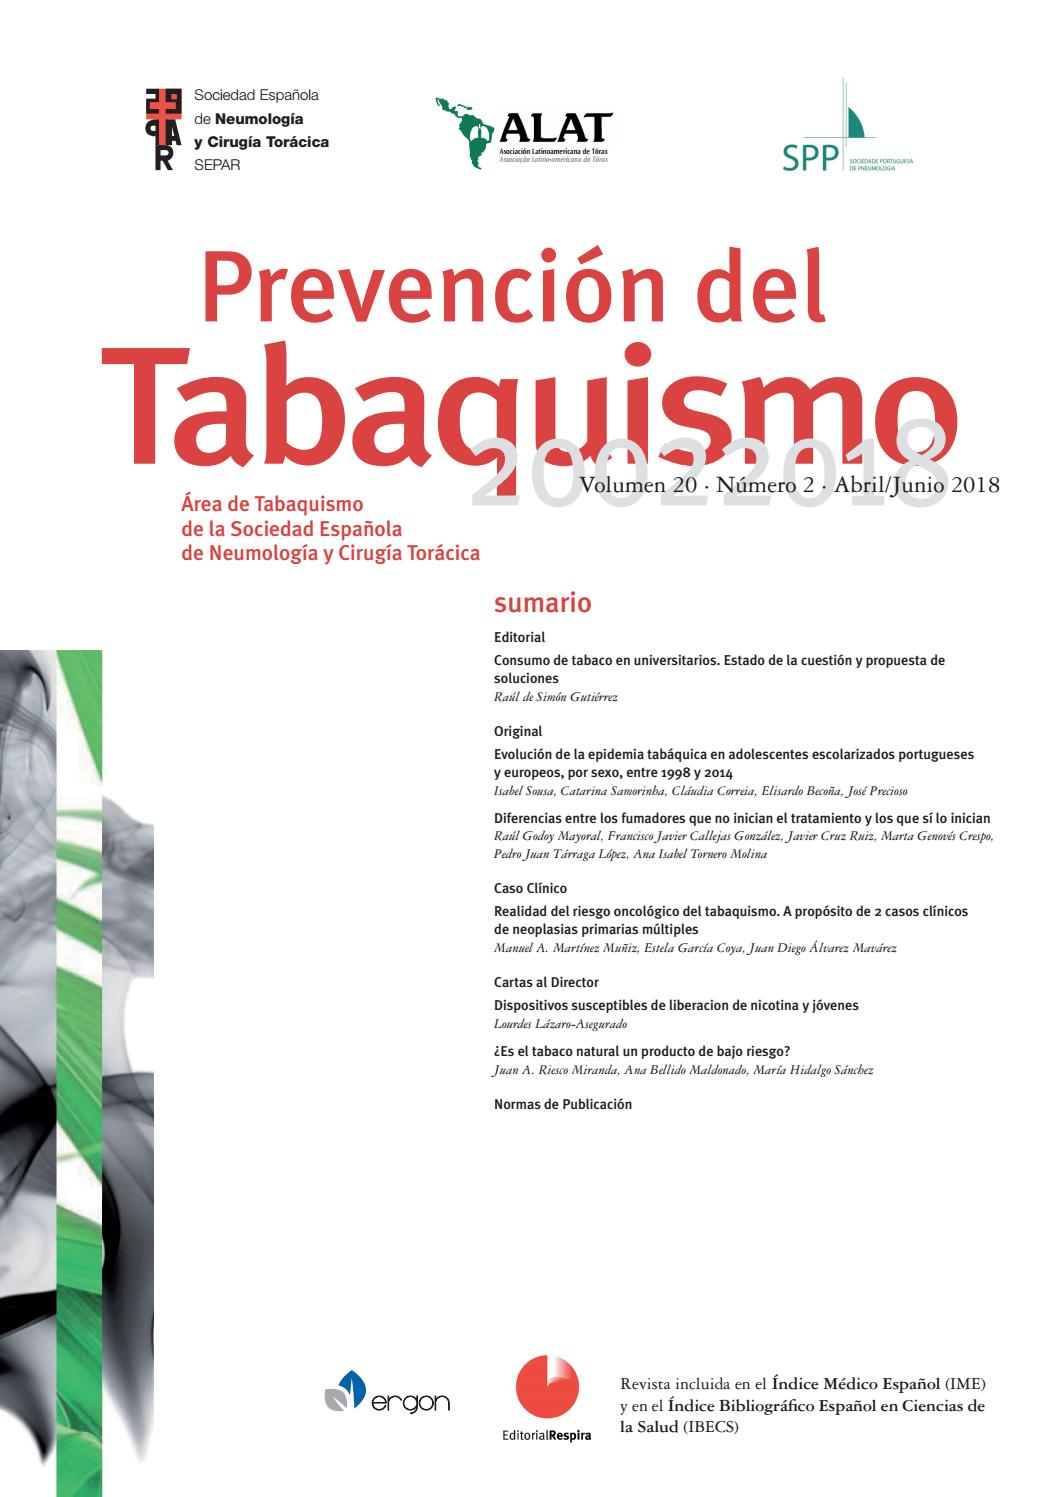 Revista Prevención del tabaquismo abril - julio 2018 by SEPAR - issuu